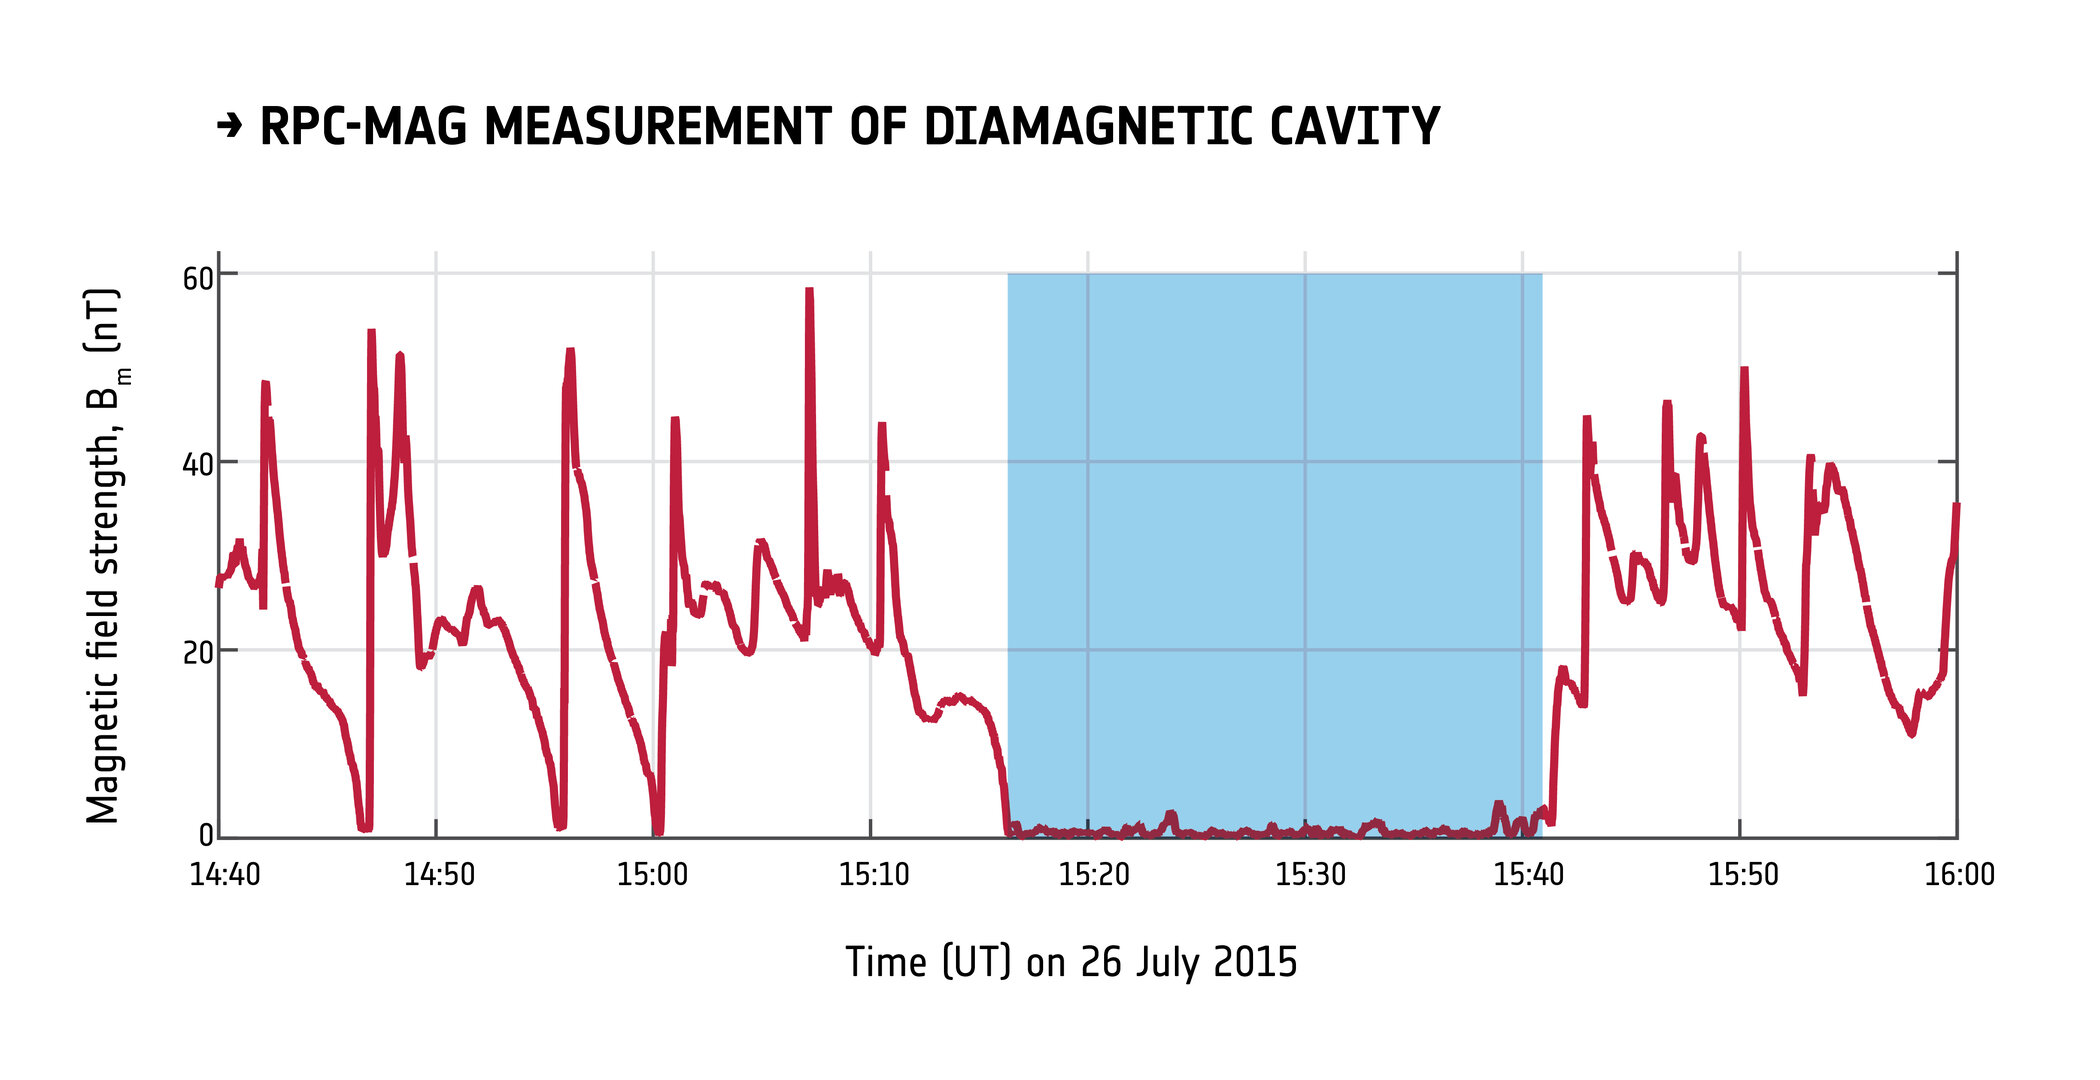 Discovery of diamagnetic cavity